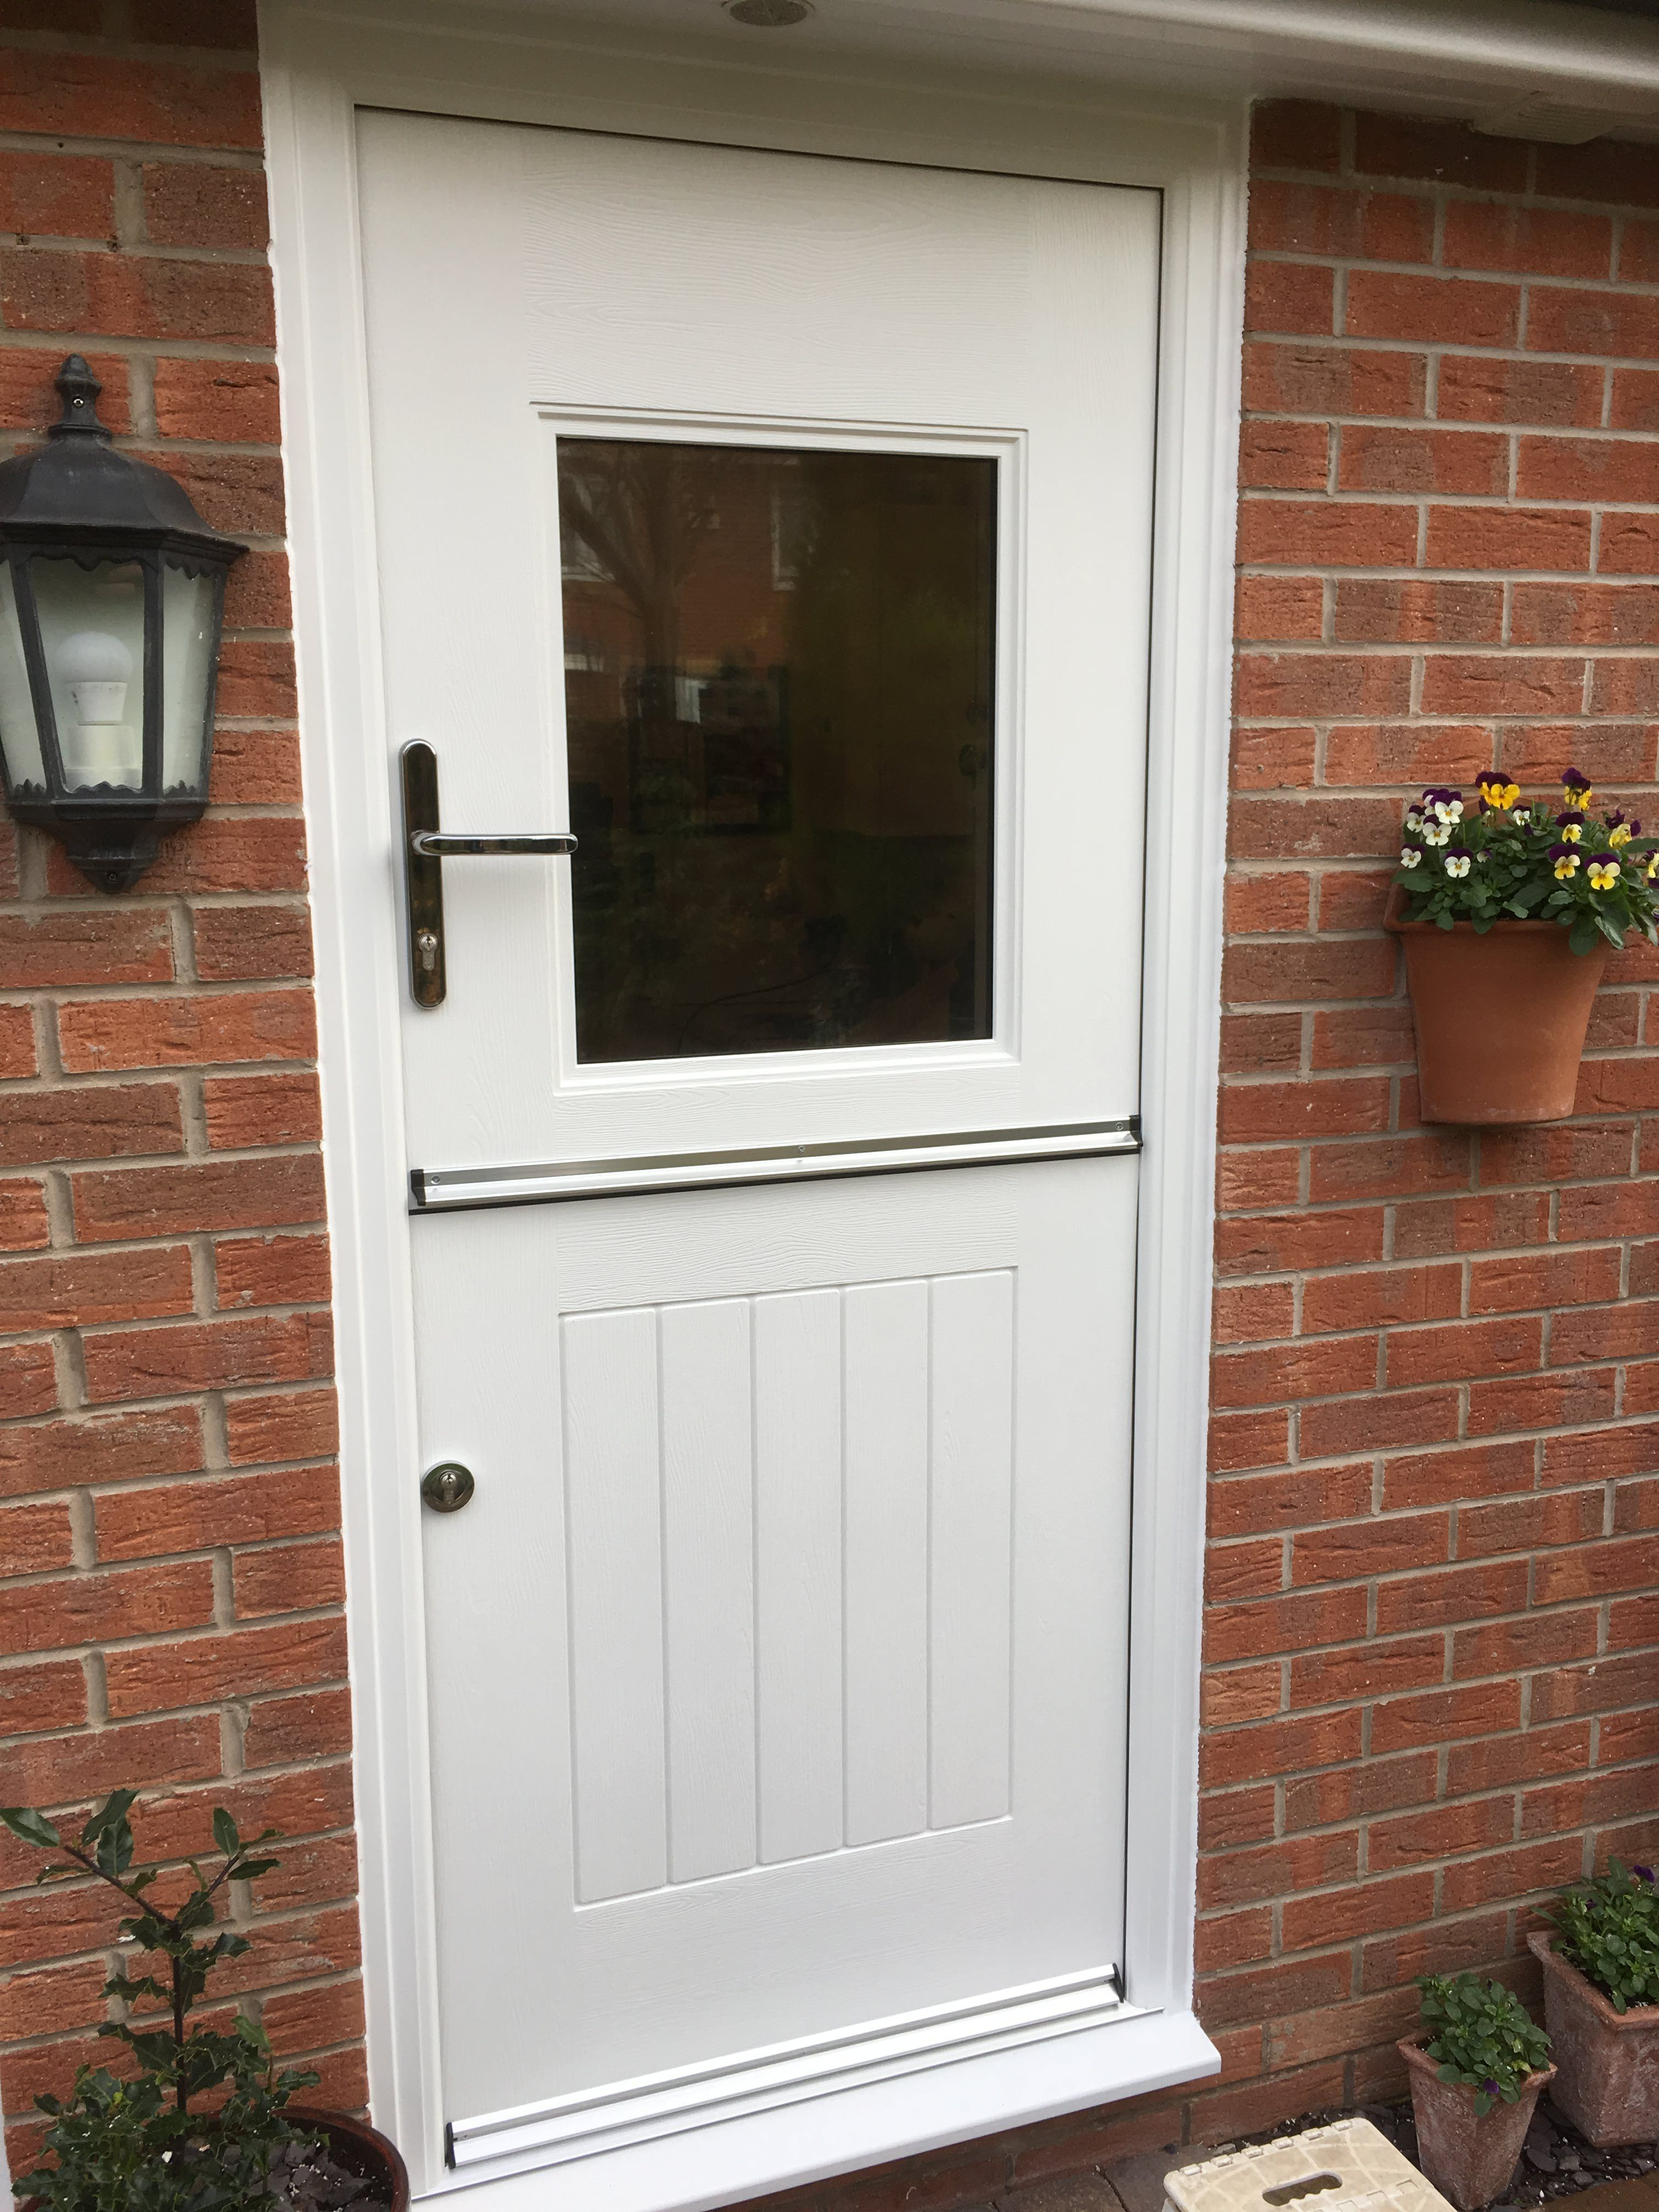 Rockdoor Stable View Light fitted in Heatherton Village